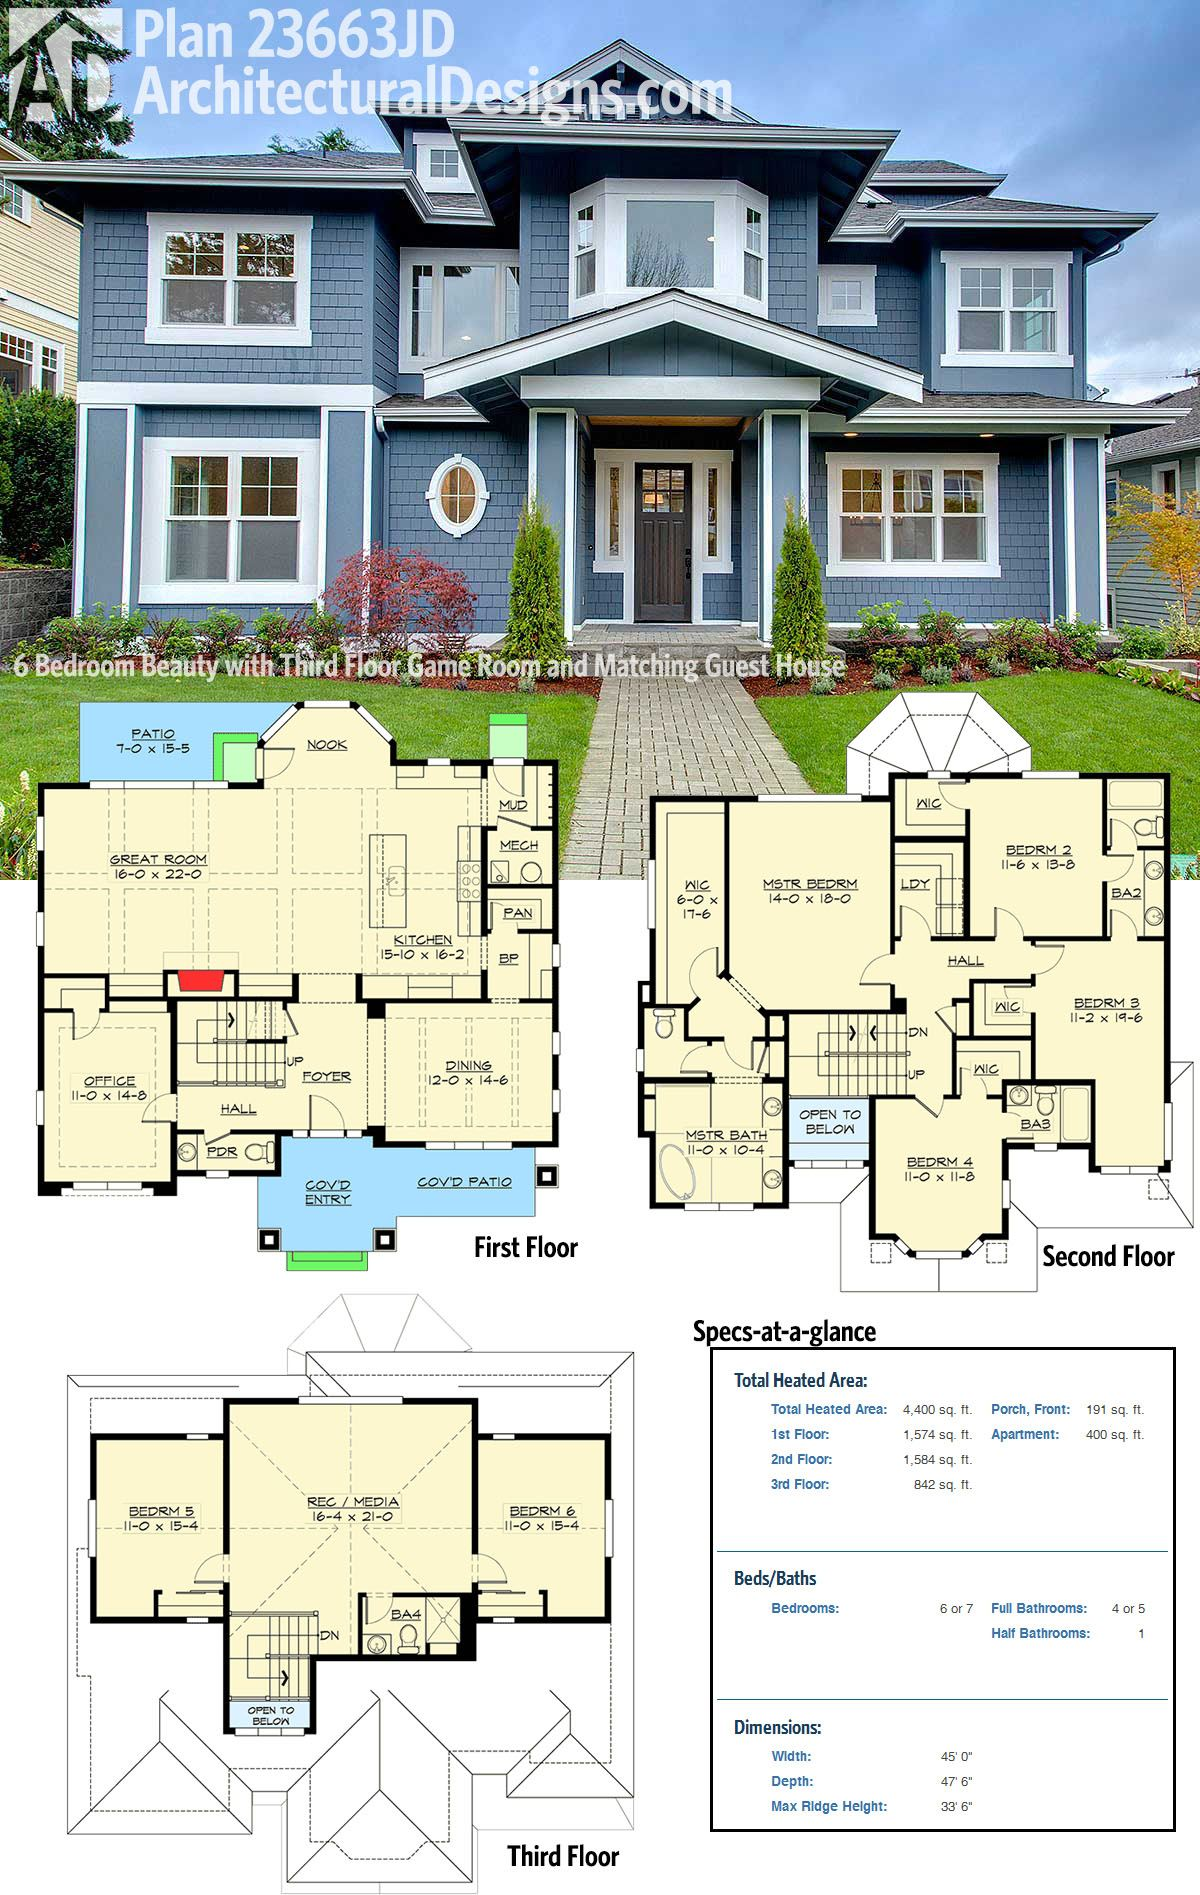 Plan 23663jd 6 bedroom beauty with third floor game room for Building a 2 story house